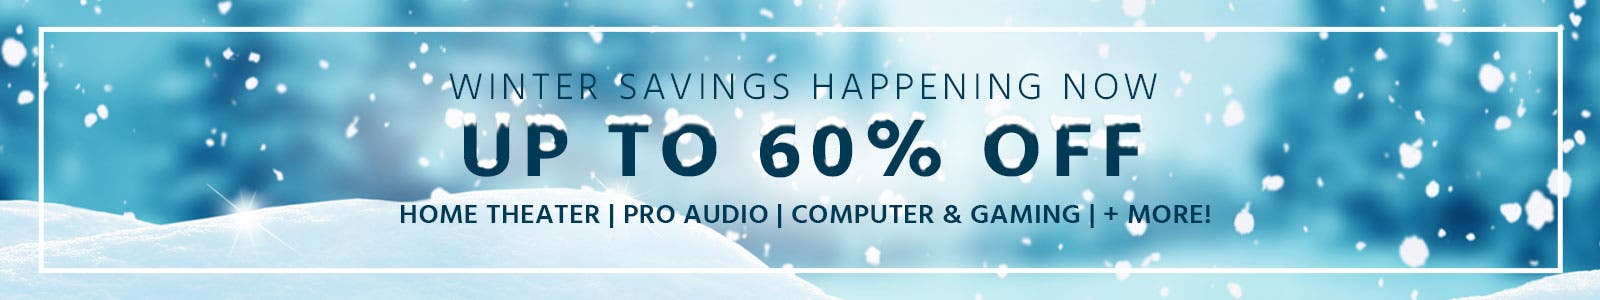 Winter Savings Happening Now - Up to 60% Off - Home Theater, Pro Audio, Computers & Gaming + More!